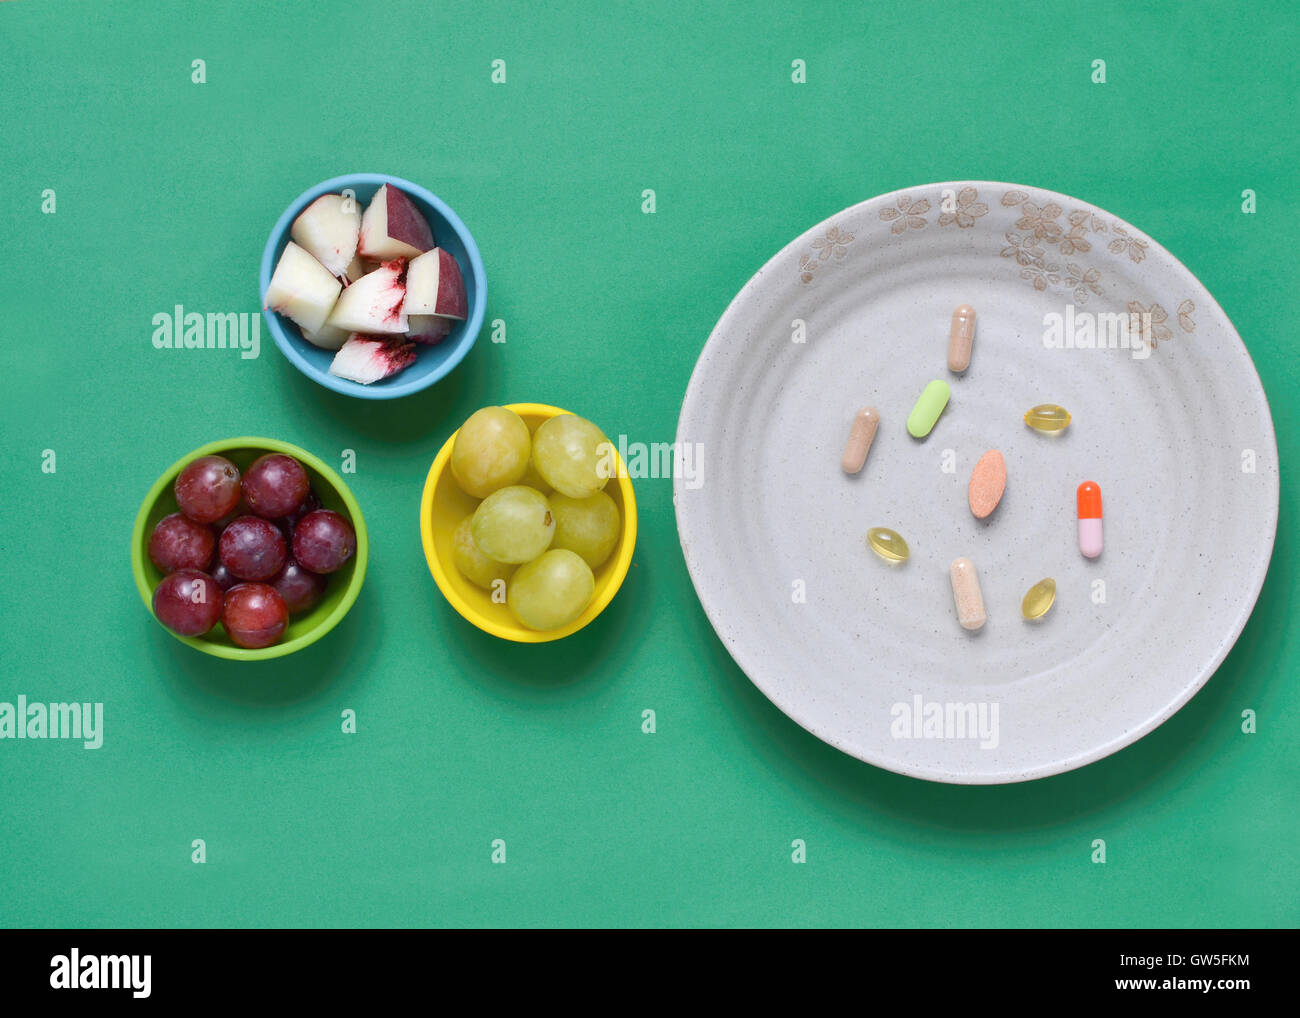 Dietary supplements, and fruits in colorful bowls, on greet tablecloth Stock Photo